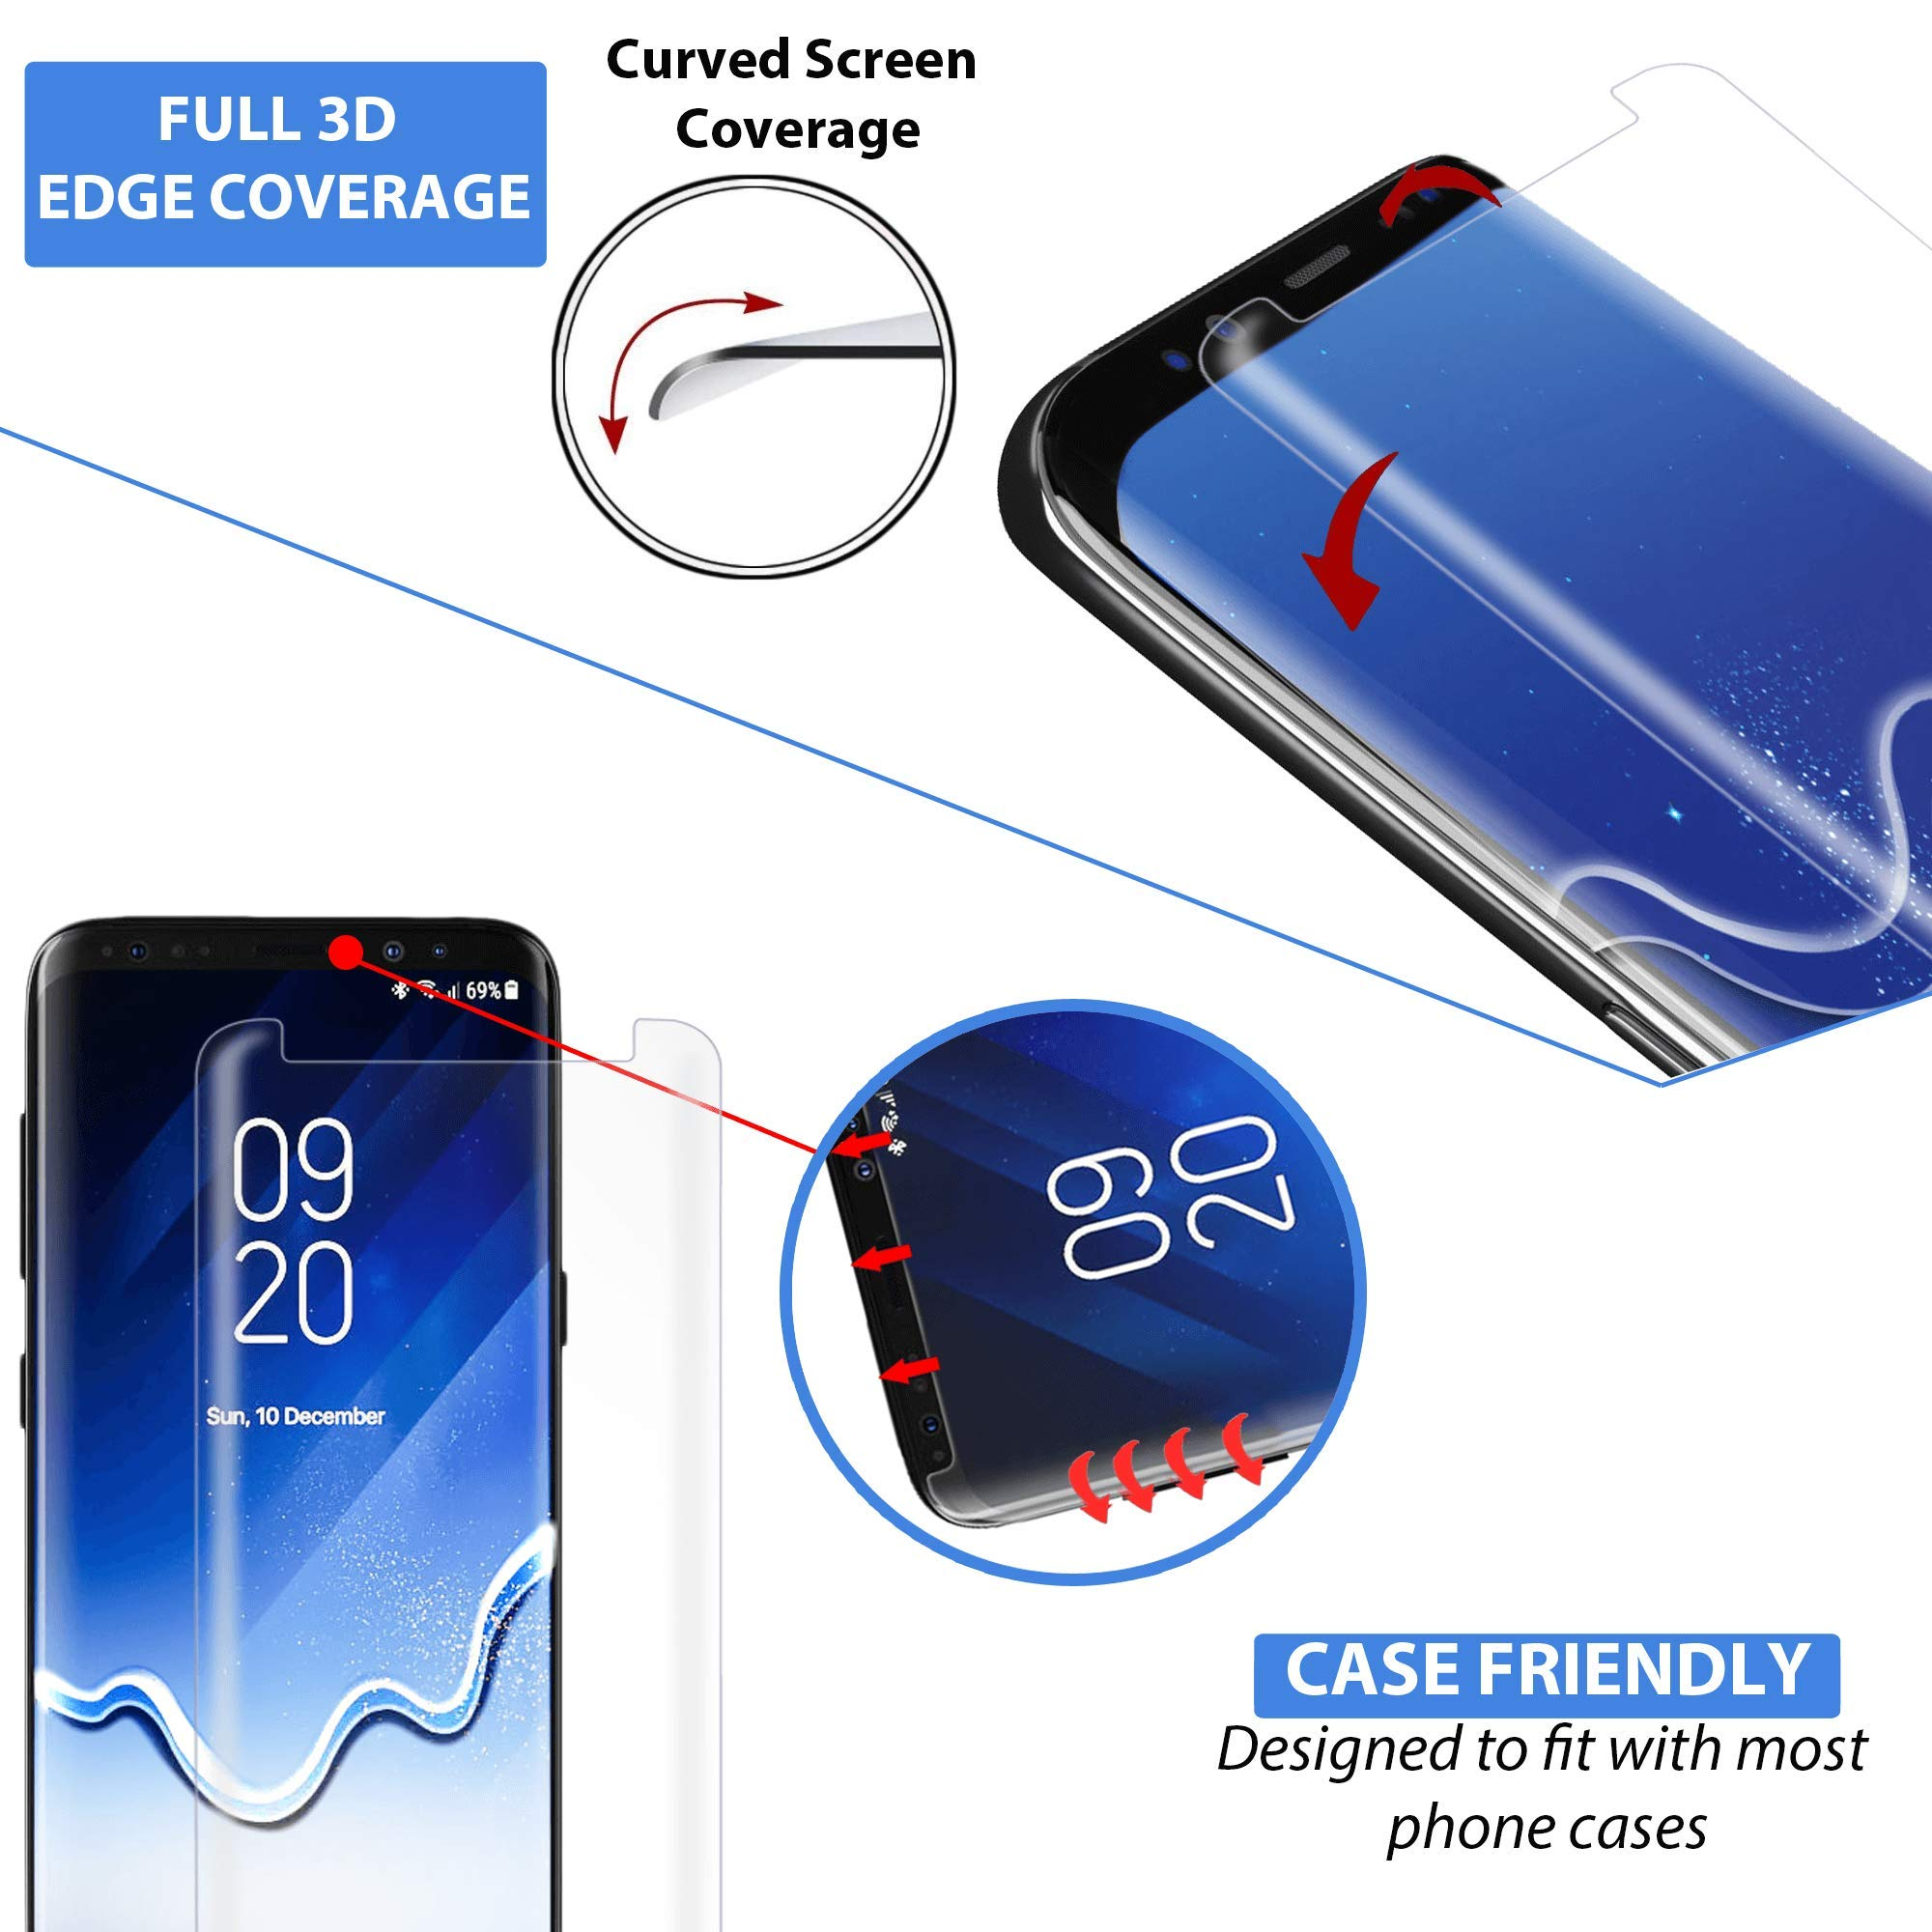 Clearview Samsung Galaxy S8 Liquid Tempered Glass Screen Protector - 9H Ultra Clear HD Japanese Glass, Full Screen Edge Coverage, Easy Install, Loca UV Light, Case Friendly (Full Kit) by Clearview (Image #3)